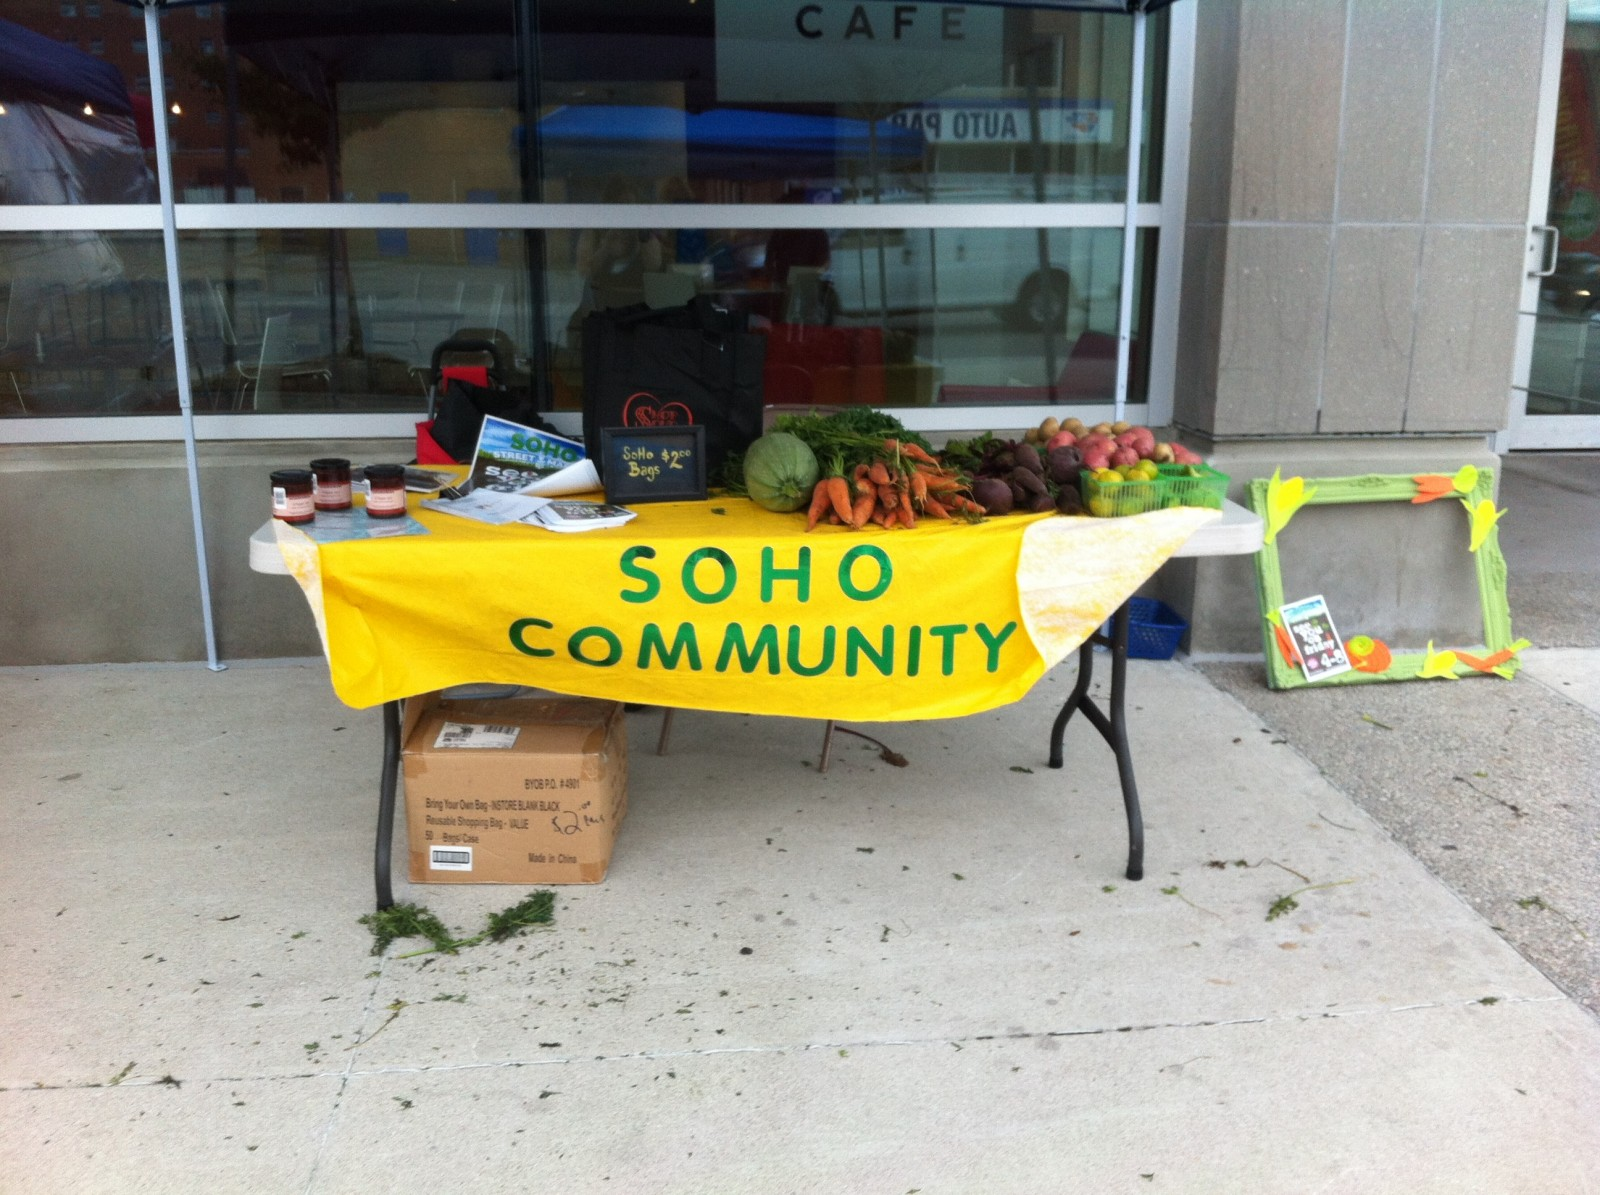 SoHo learns some lessons after running market